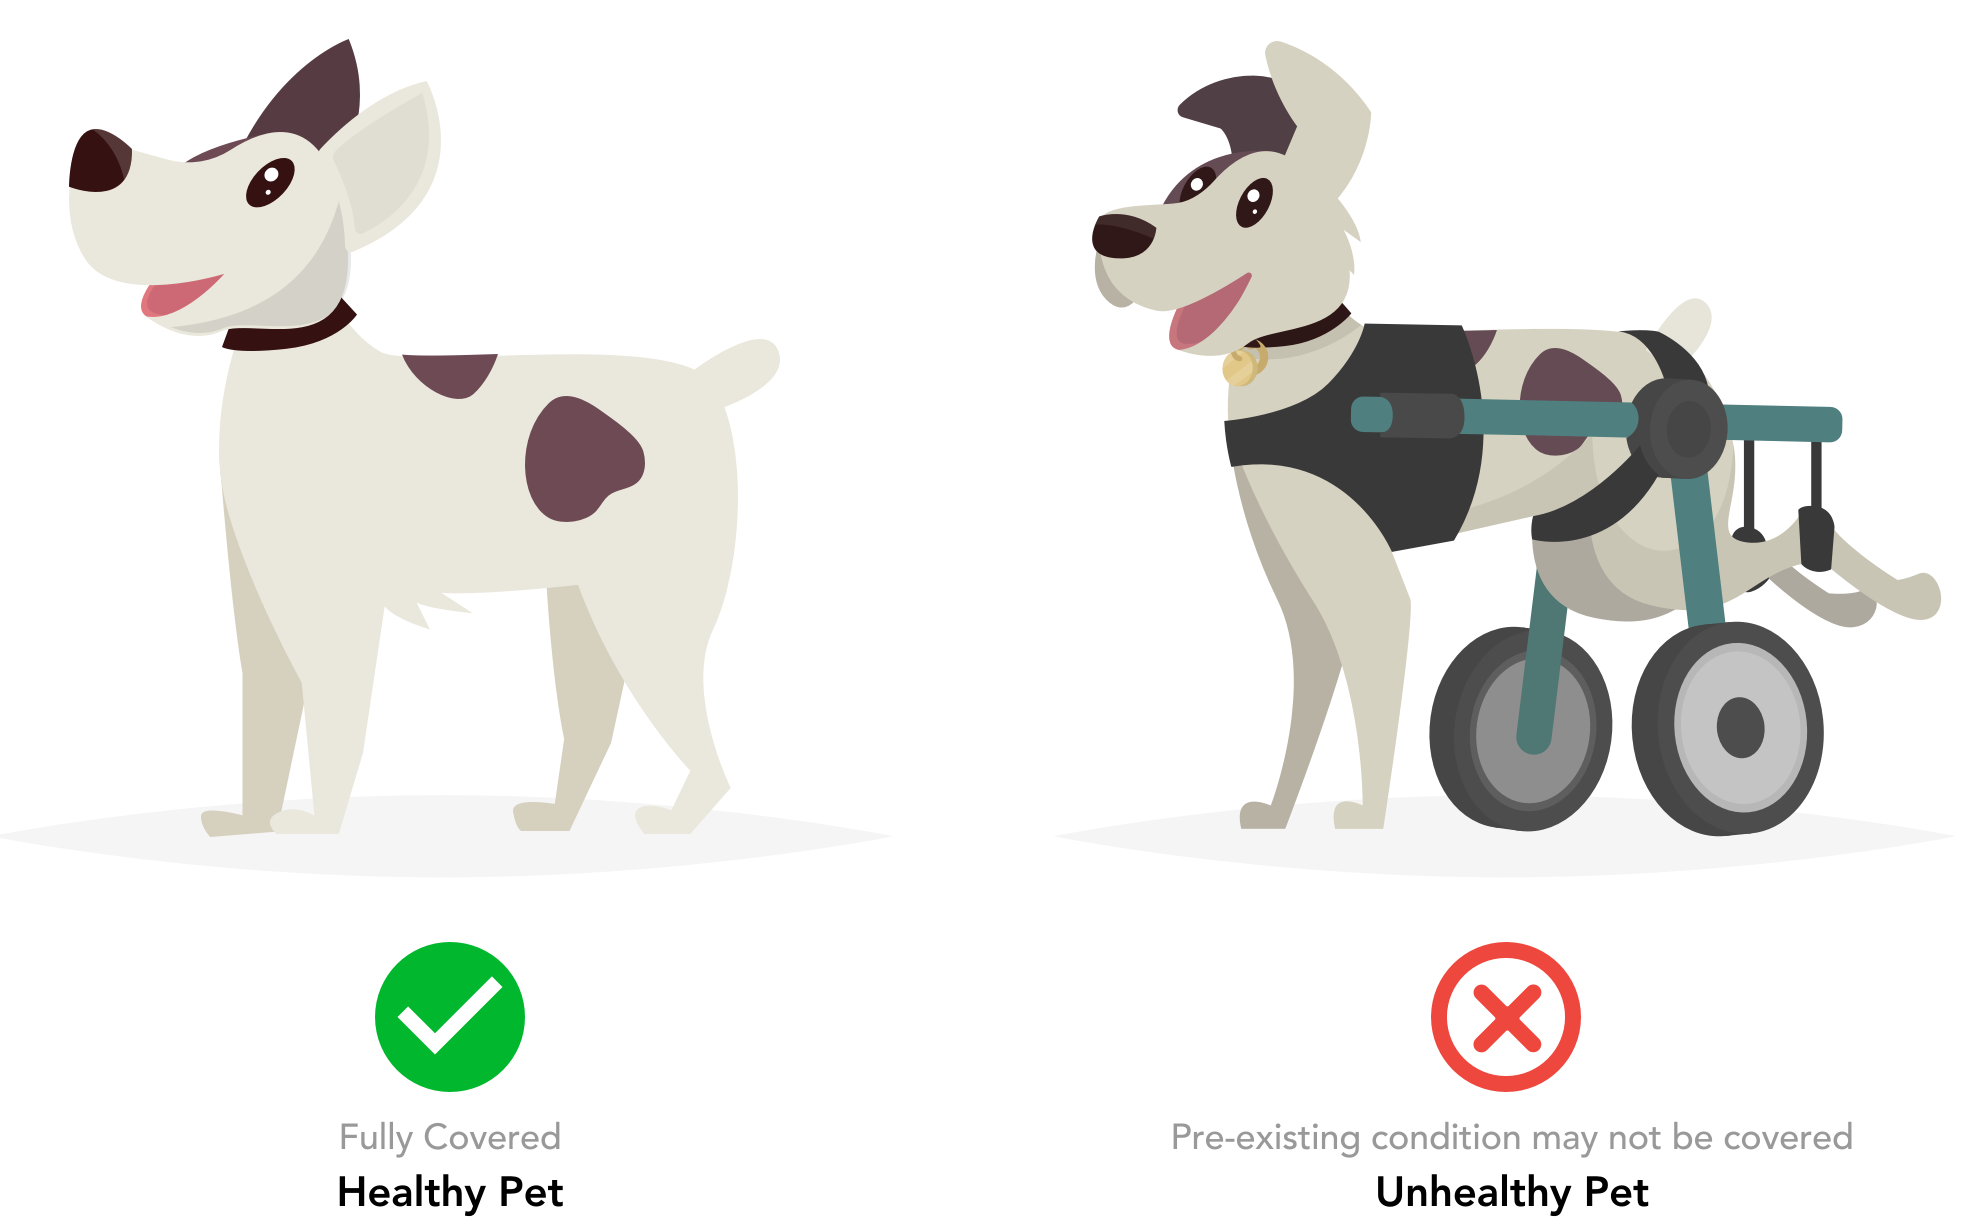 A dog that can be covered by pet insurance because he has no pre-existing conditions, and a dog who won't be covered by pet insurance for their pre-existing condition.